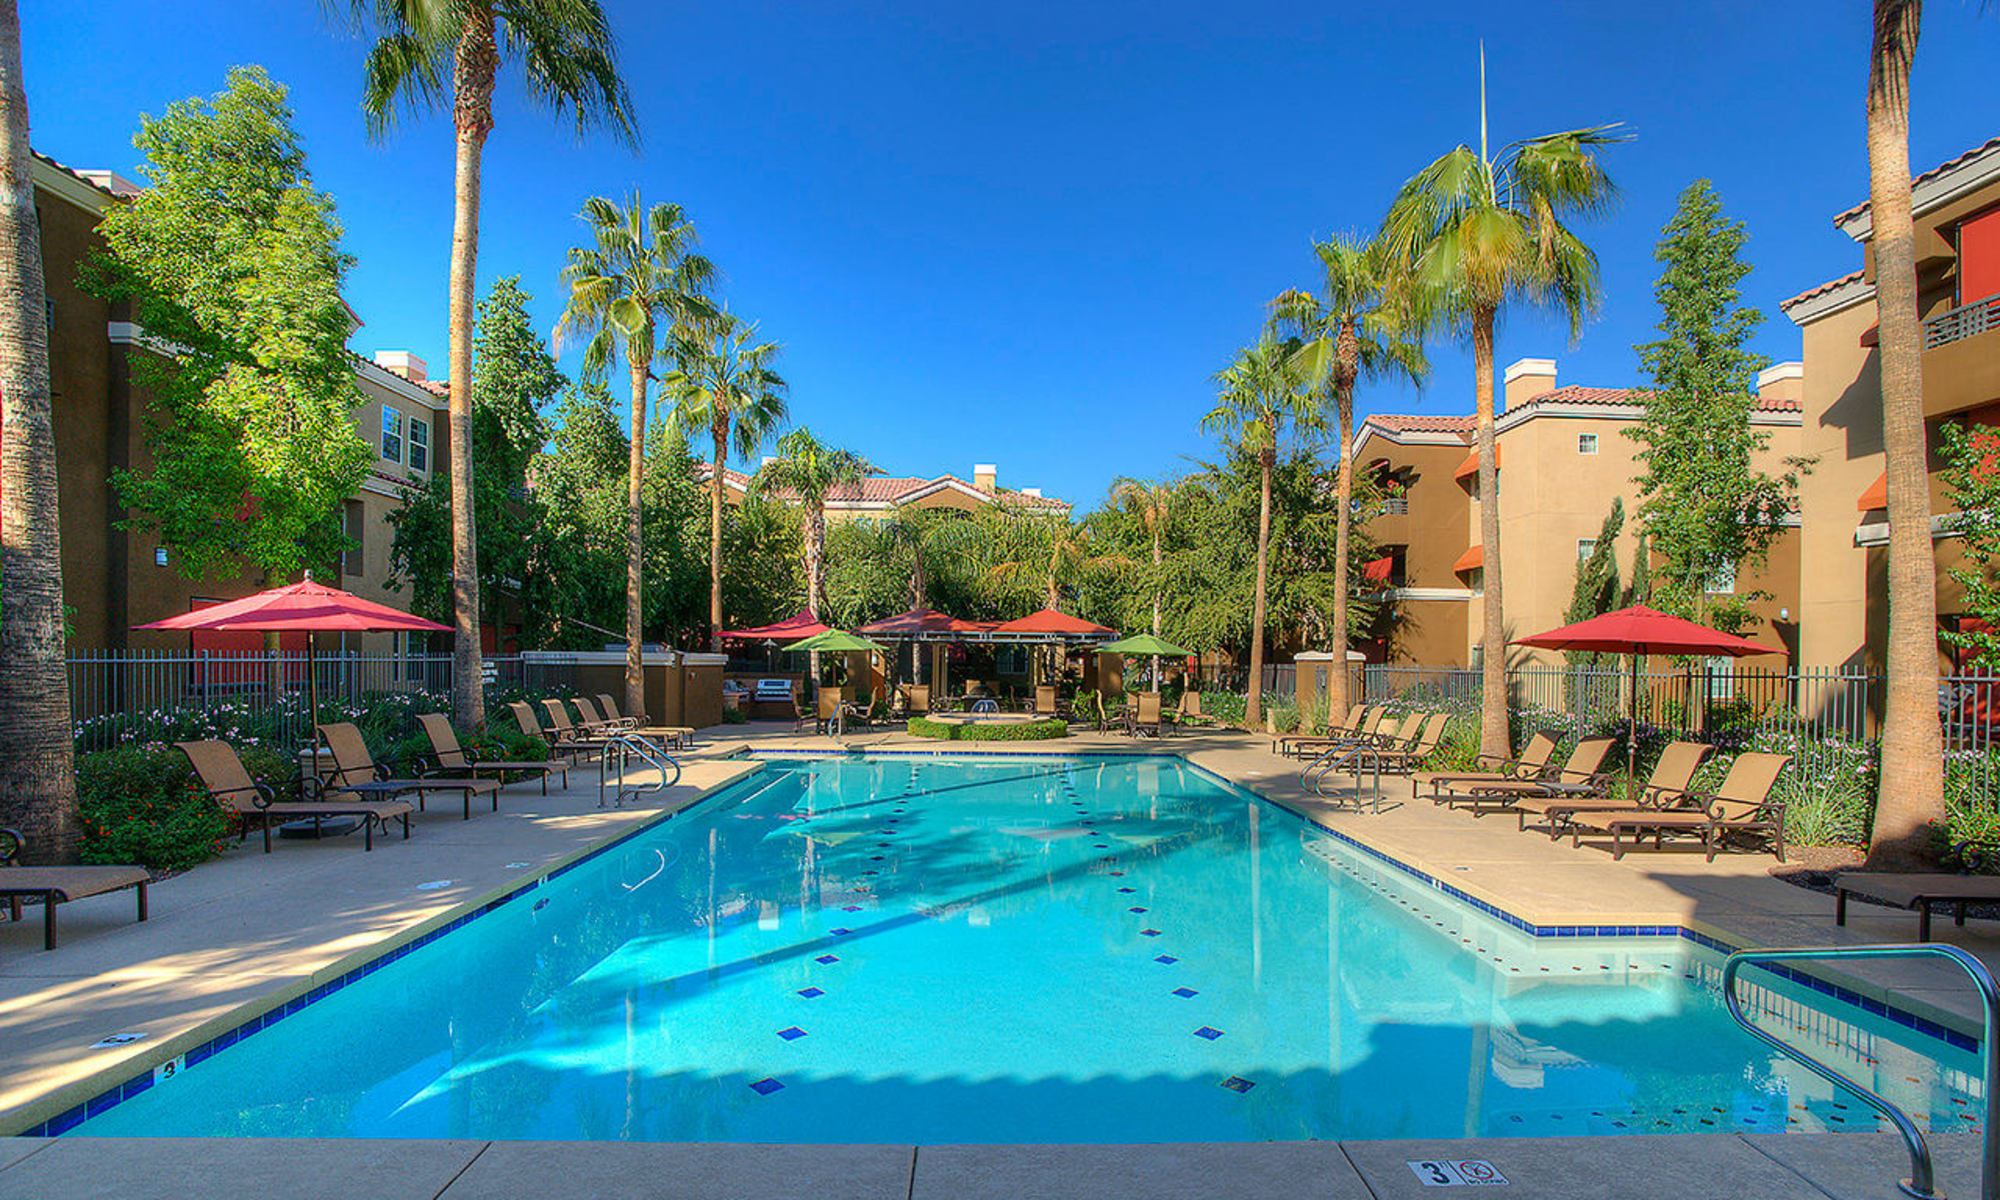 Apartments at Park on Bell in Phoenix, Arizona